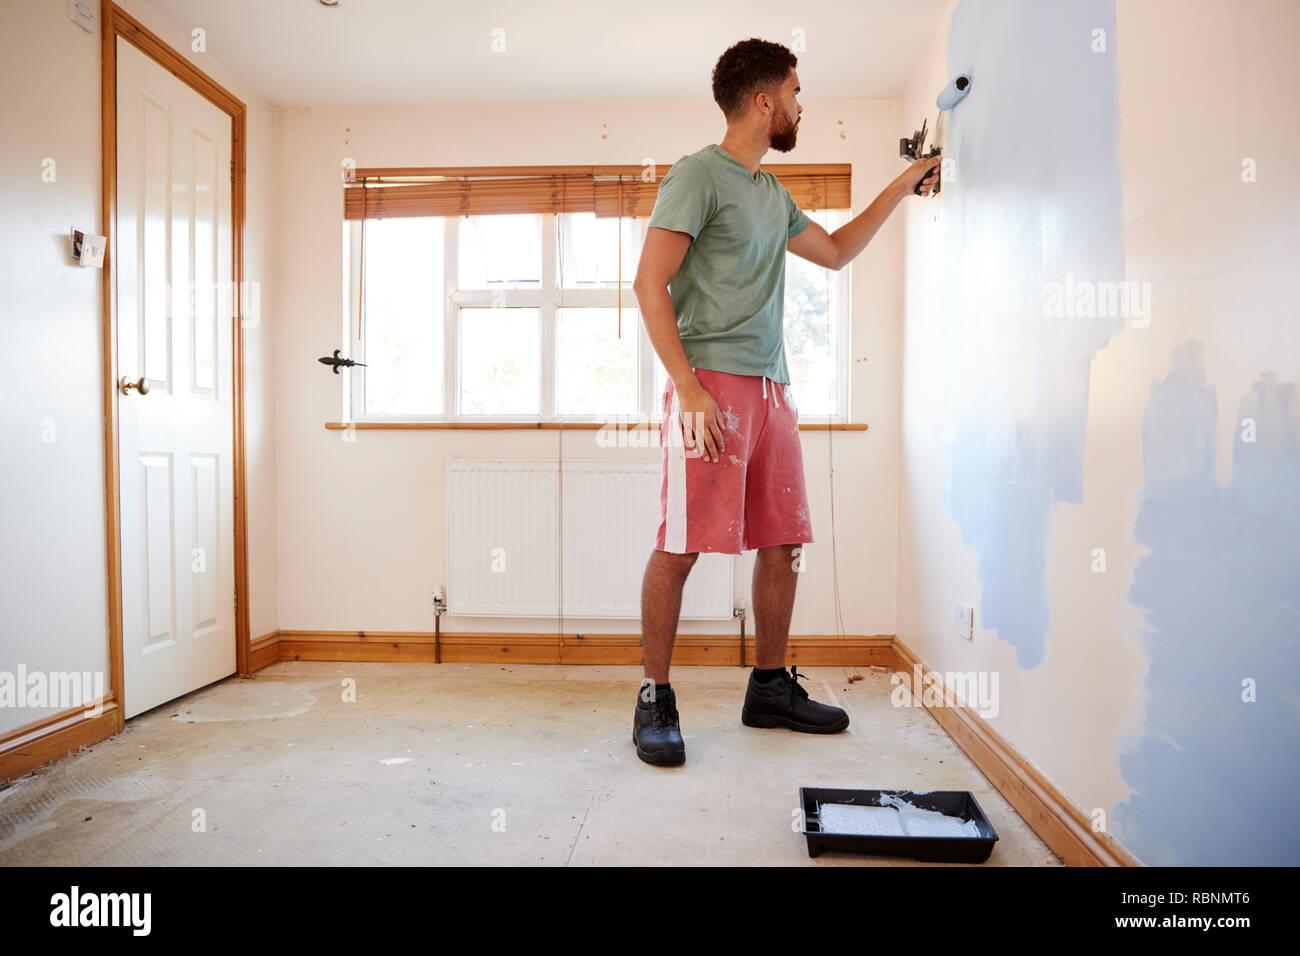 Man Decorating Room In New Home Painting Wall Stock Photo: 230973350